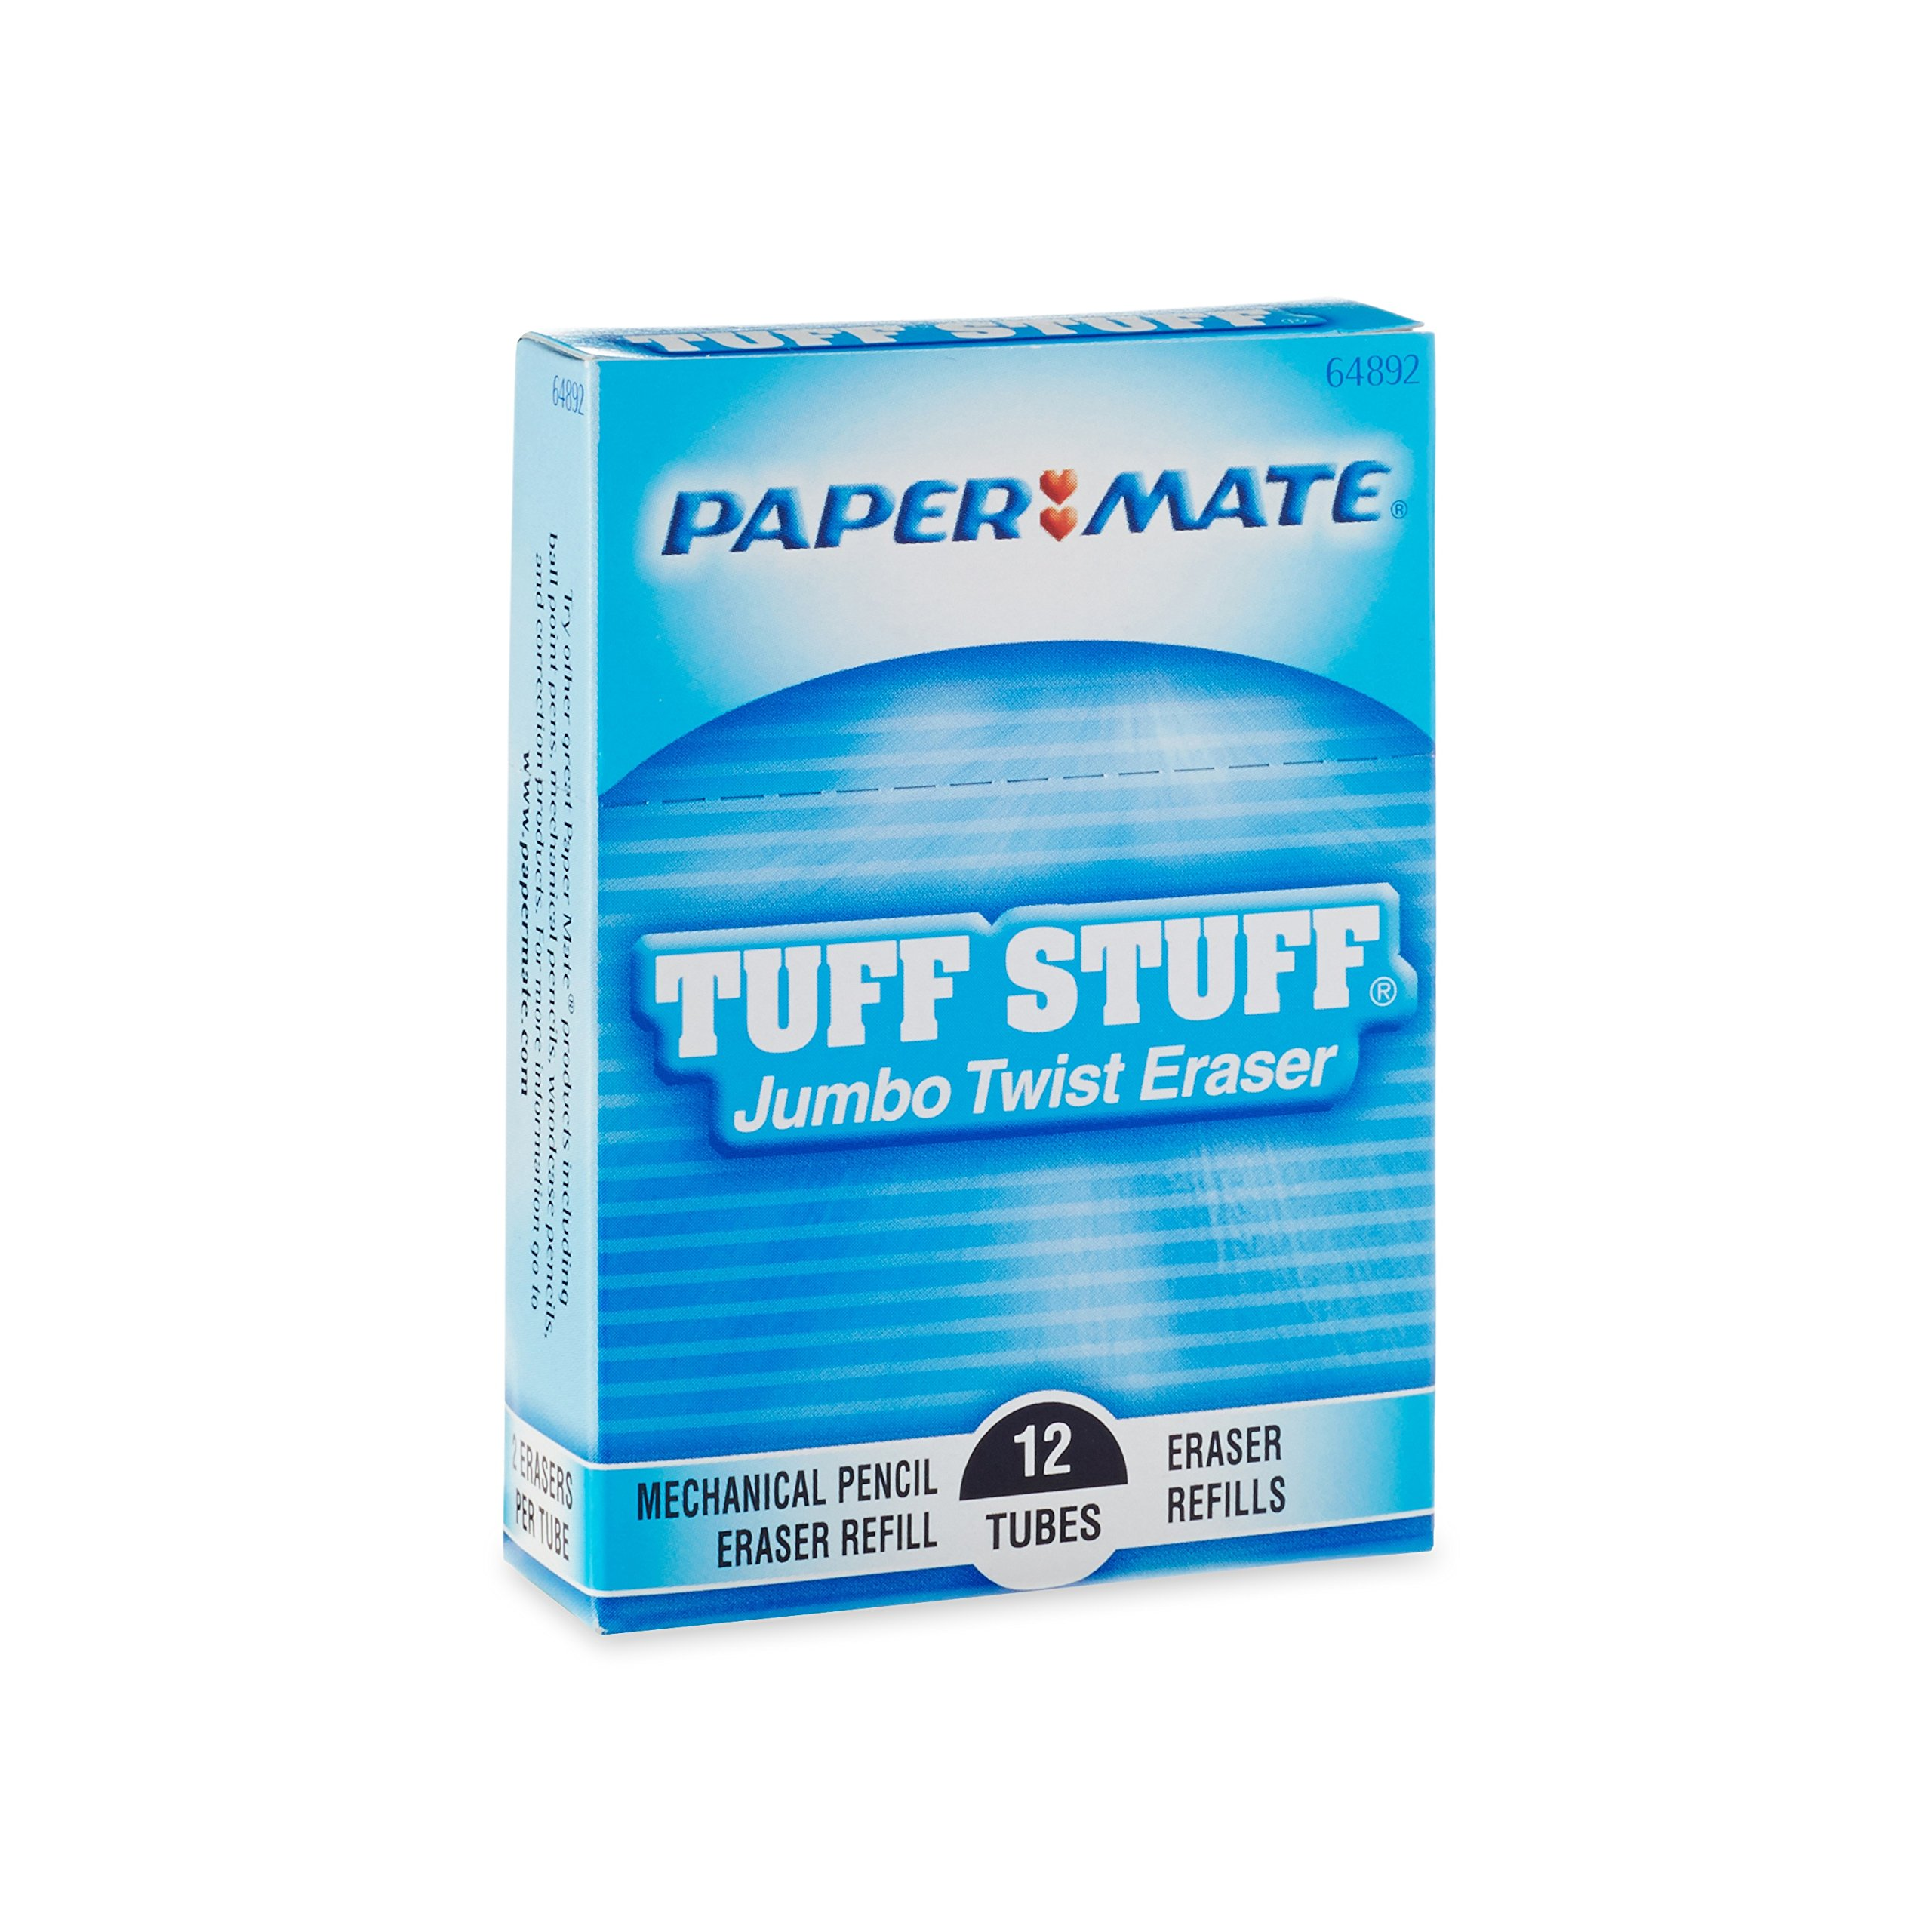 Paper Mate Jumbo Twist Eraser, Pack of 12 (64881) by Paper Mate (Image #1)